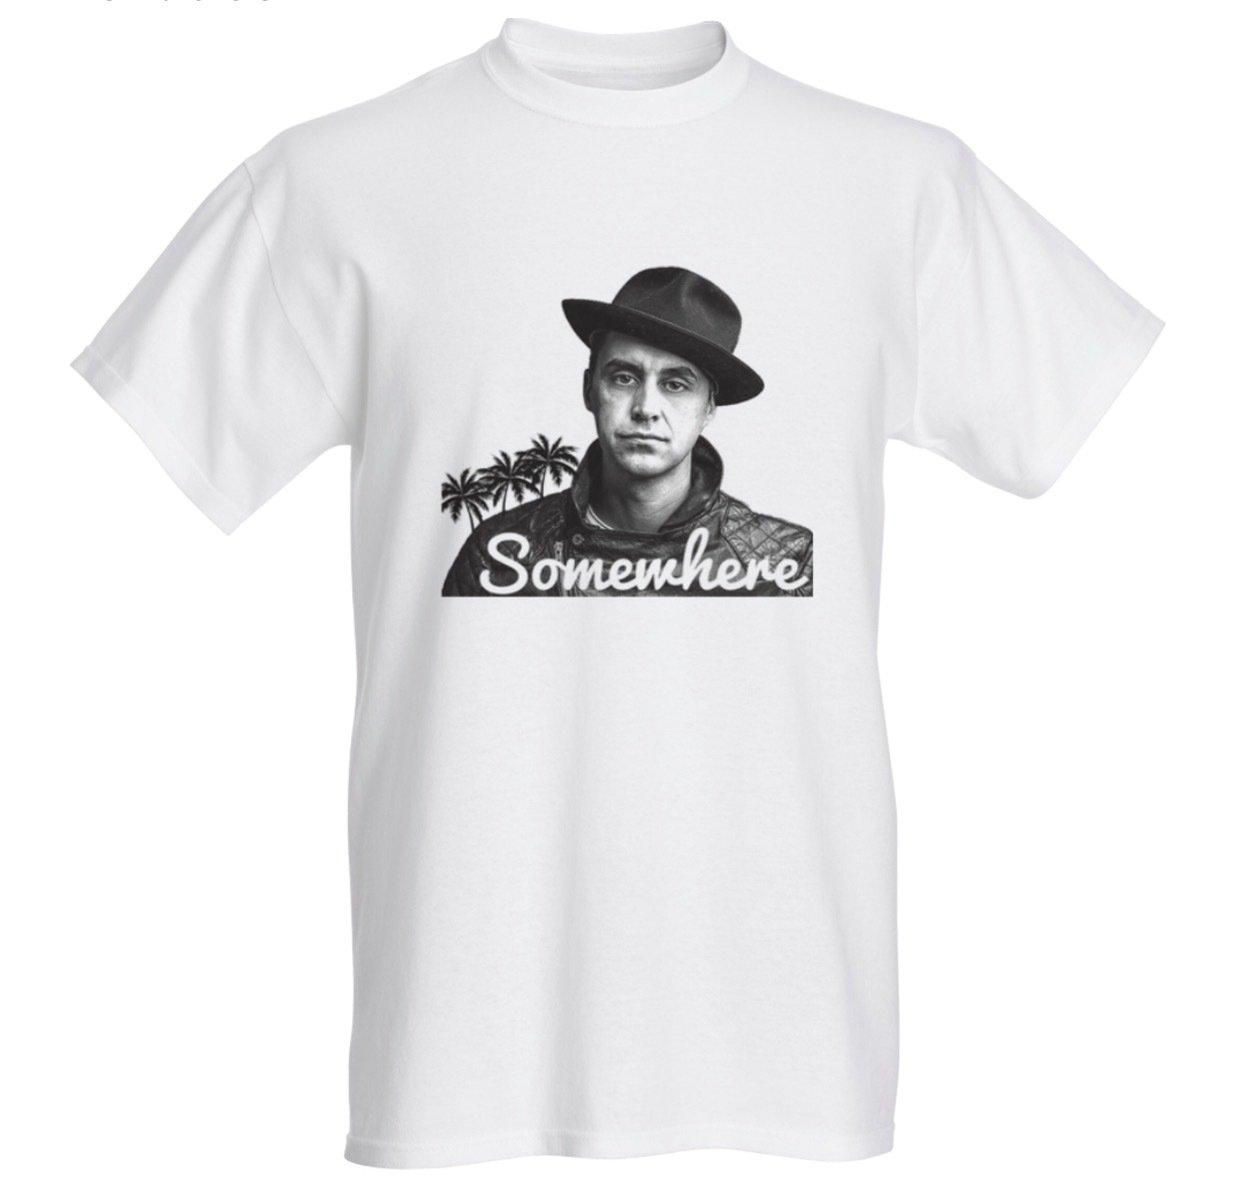 "Somewhere ""Josh Stevens"" - T-shirt"